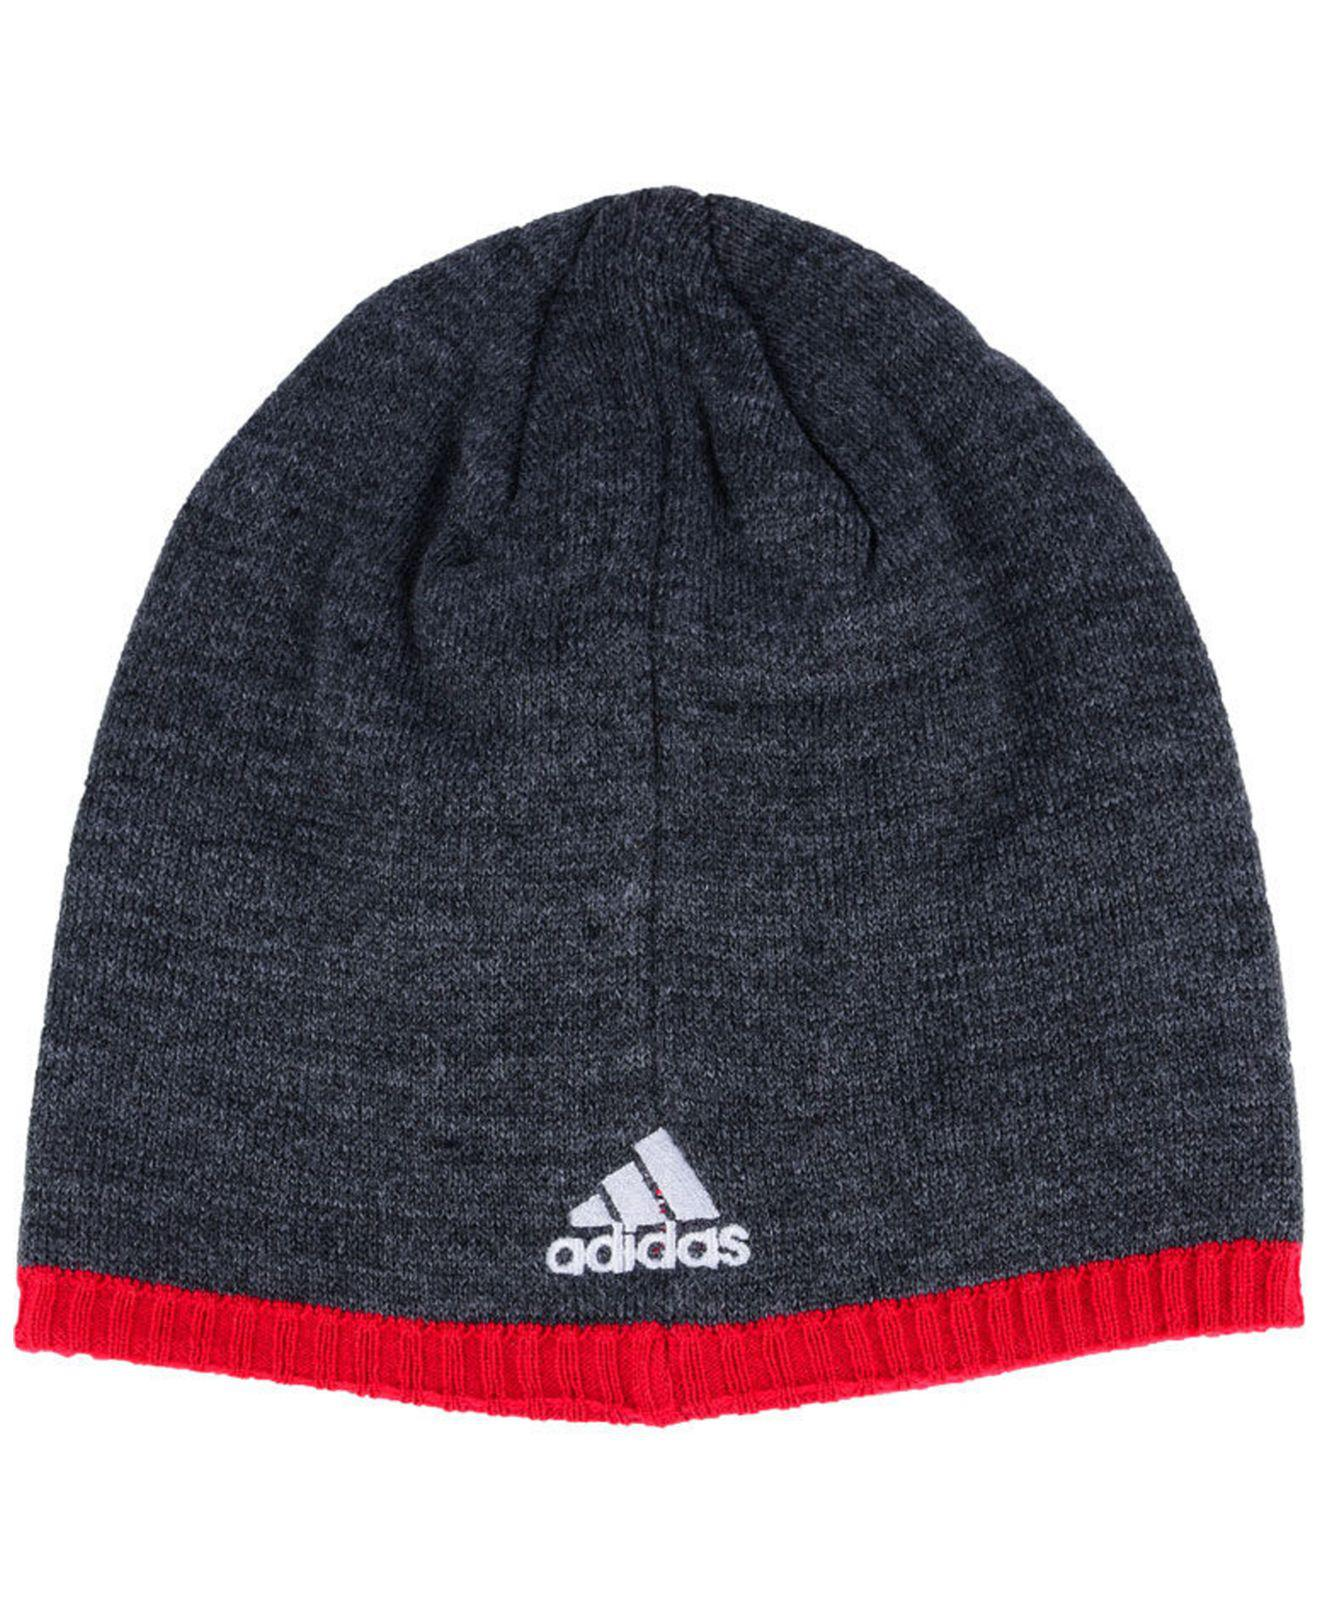 best sneakers 5cad0 0770d ... best lyst adidas washington capitals heather beanie for men f90bf 27bef